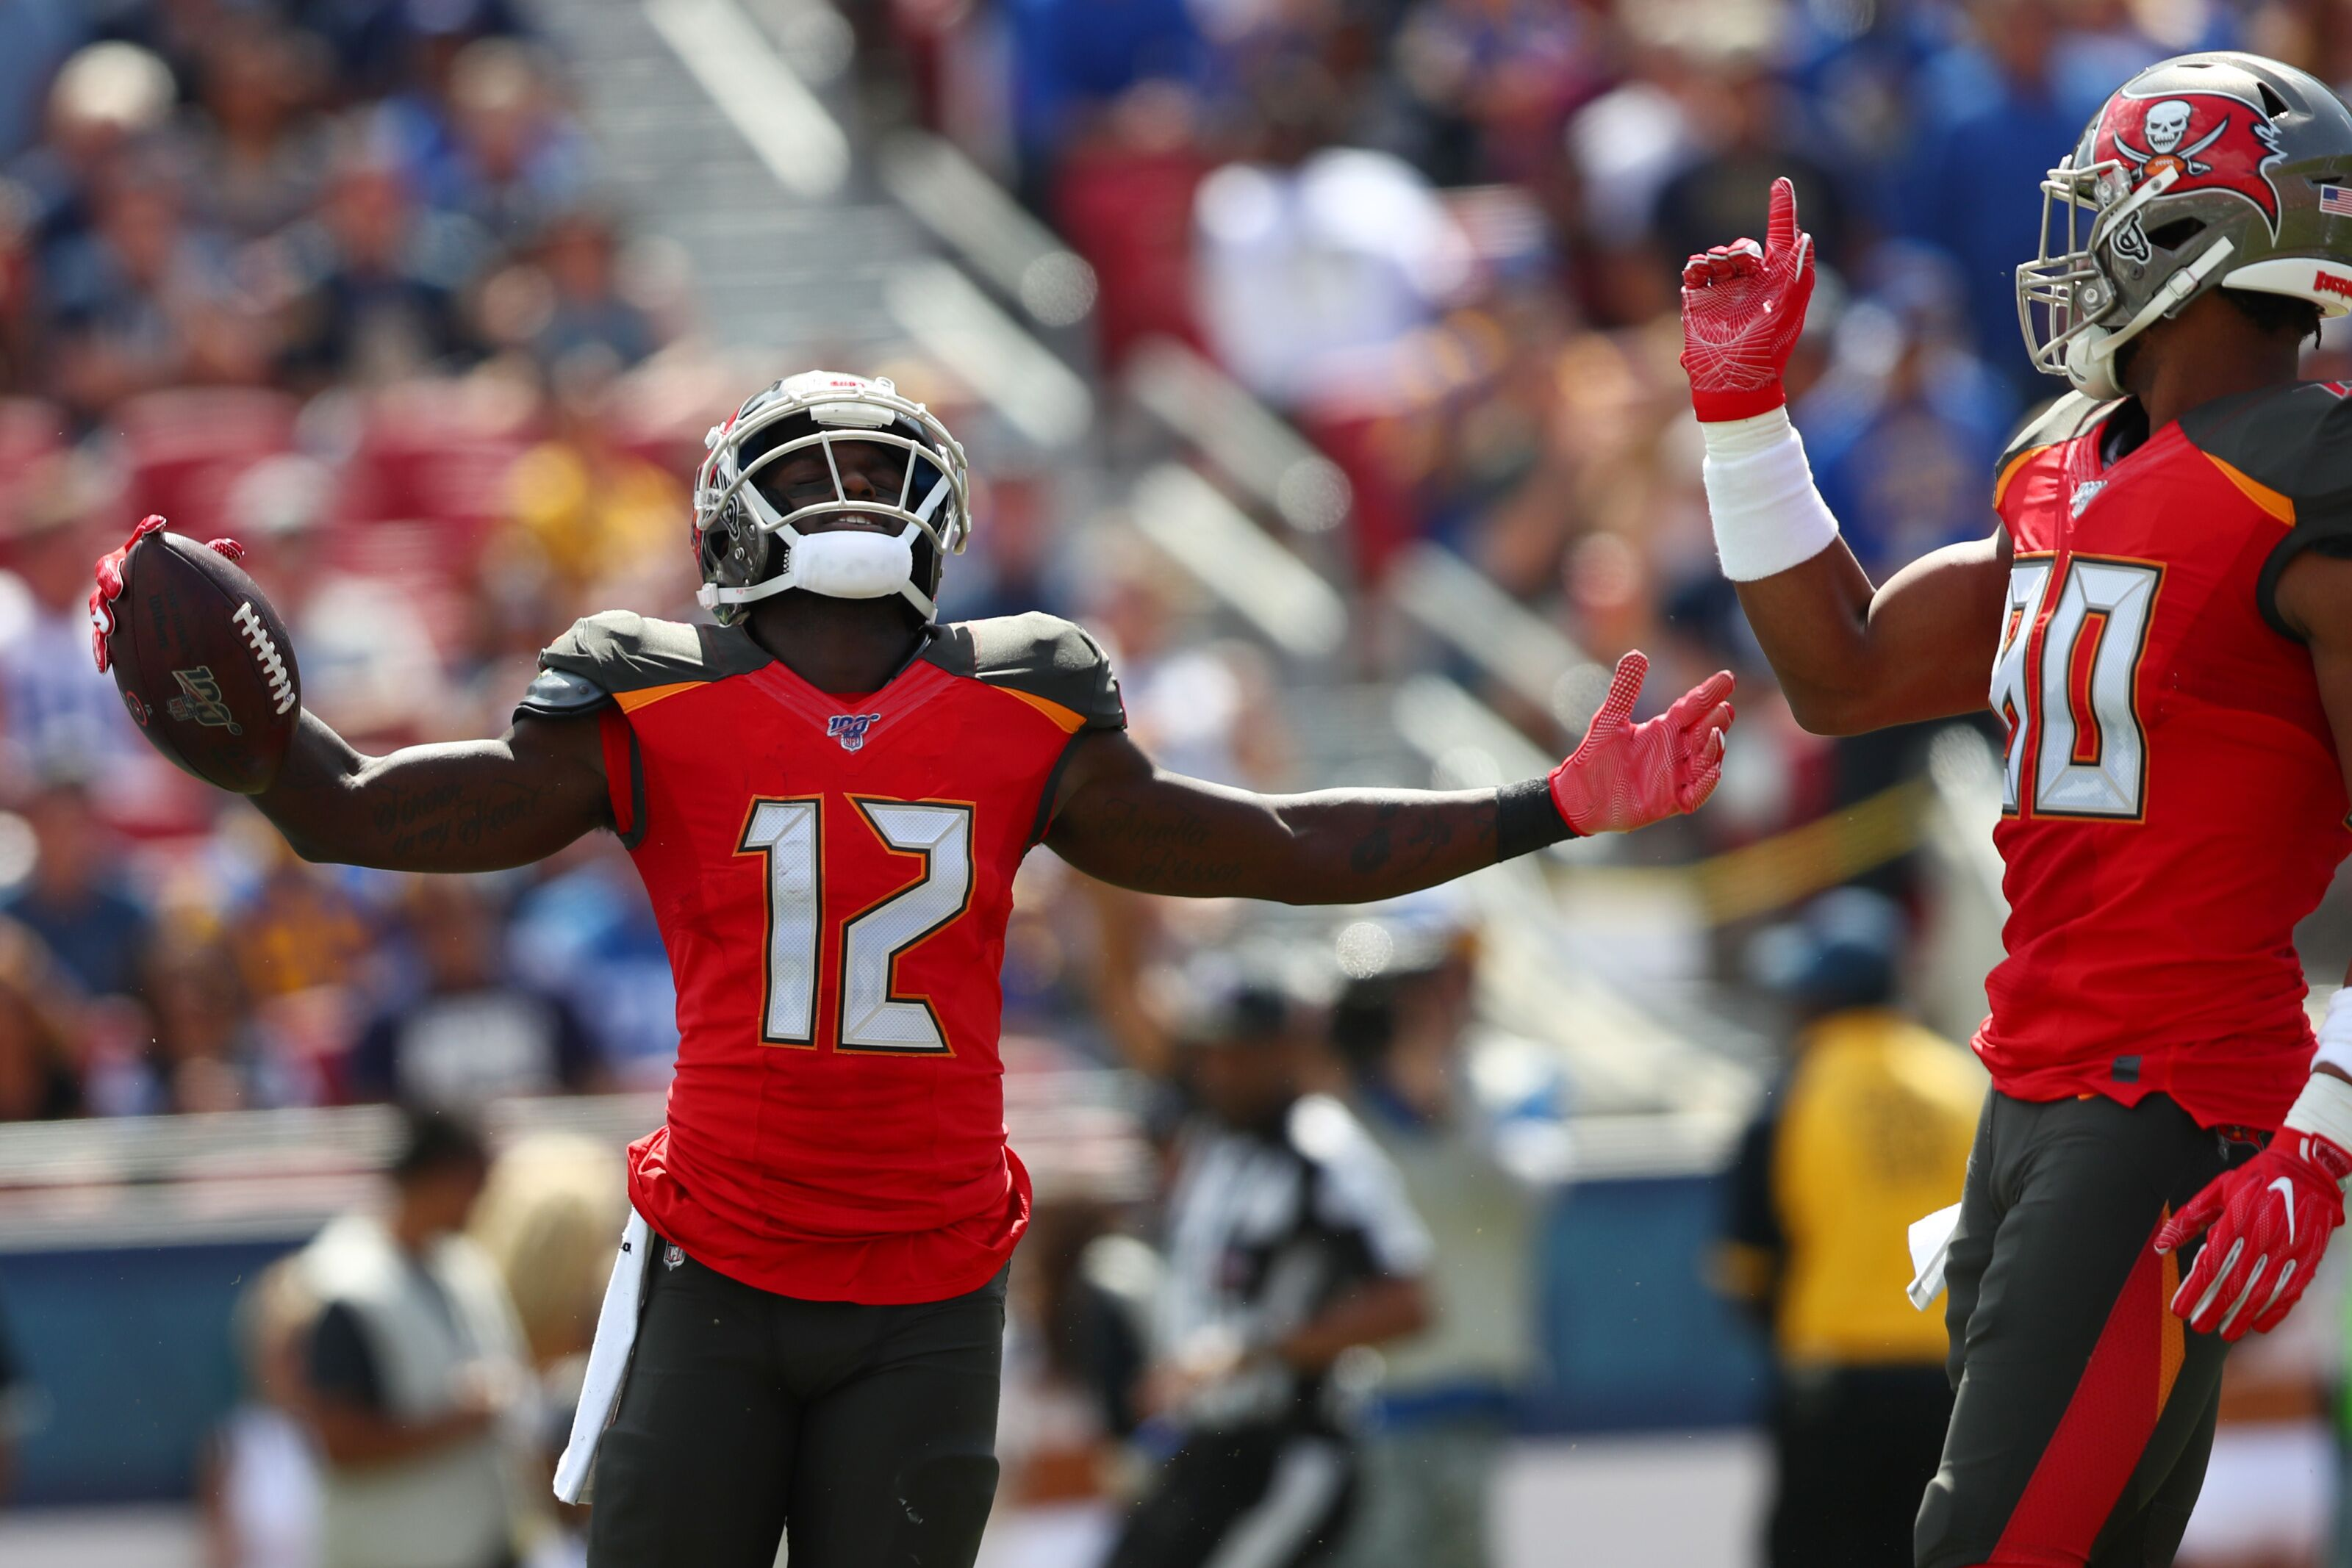 Buccaneers wide receiver pledges donation to animal rescue per catch